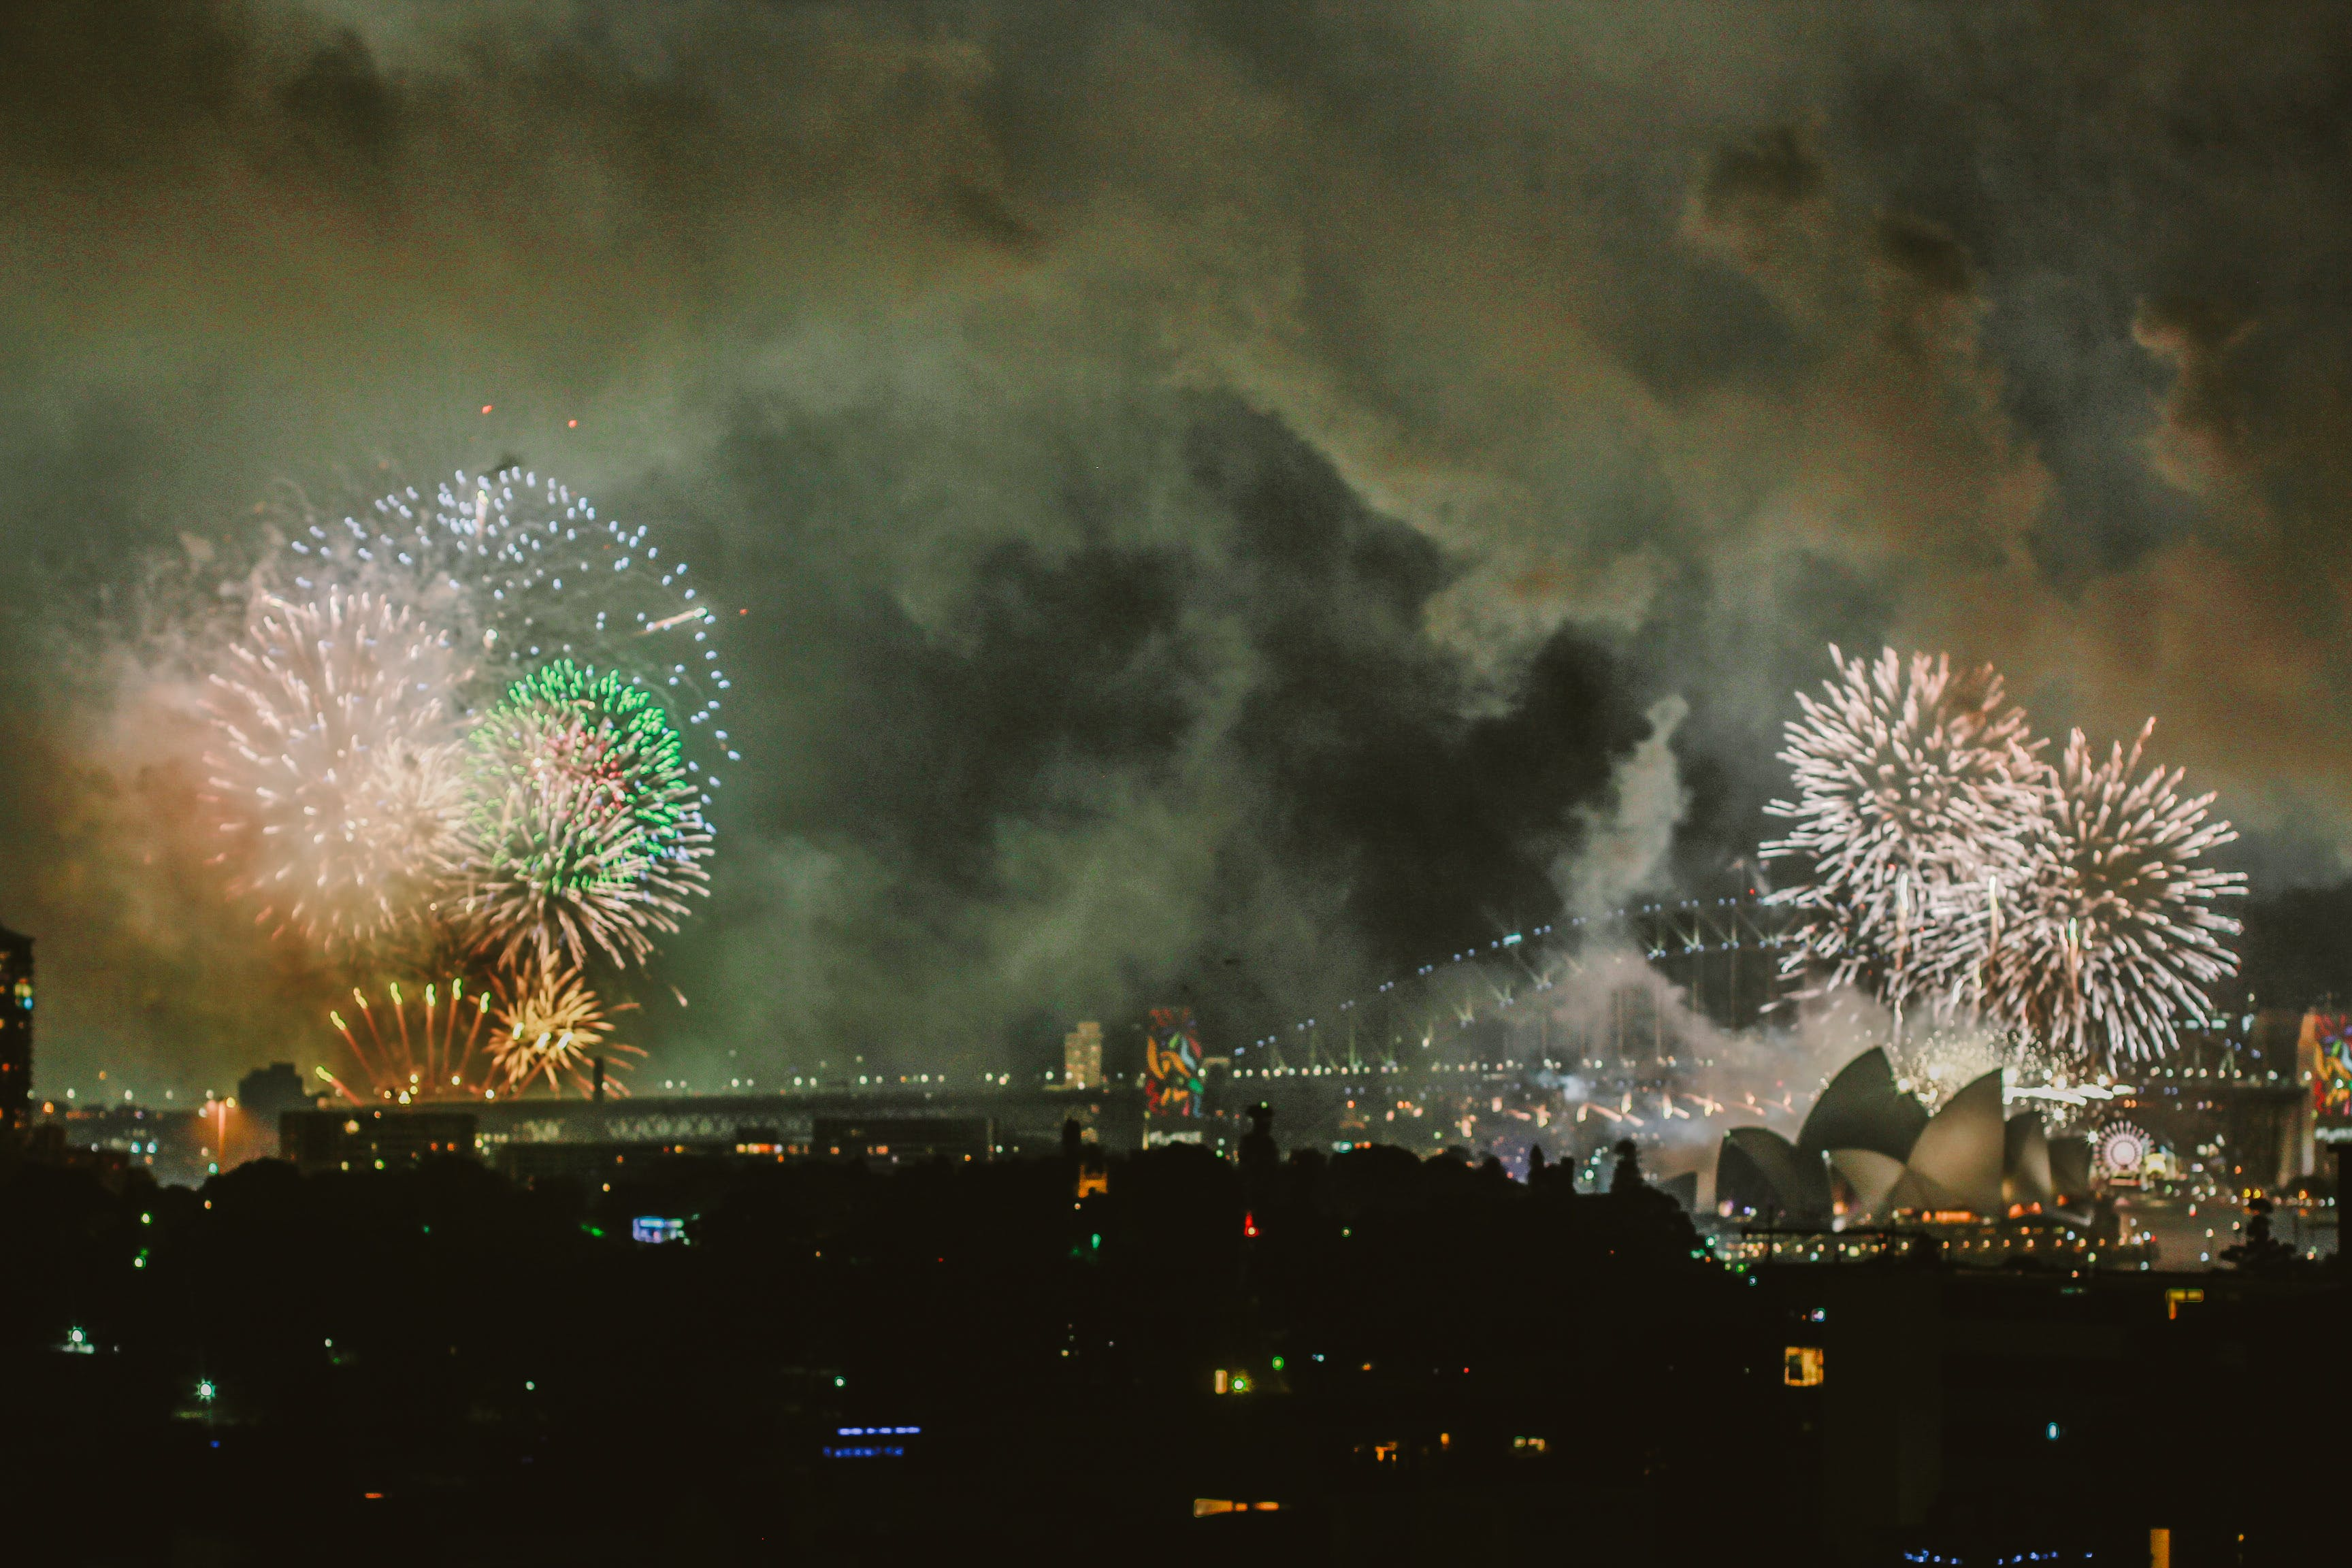 Photography Of City With Fireworks At Night